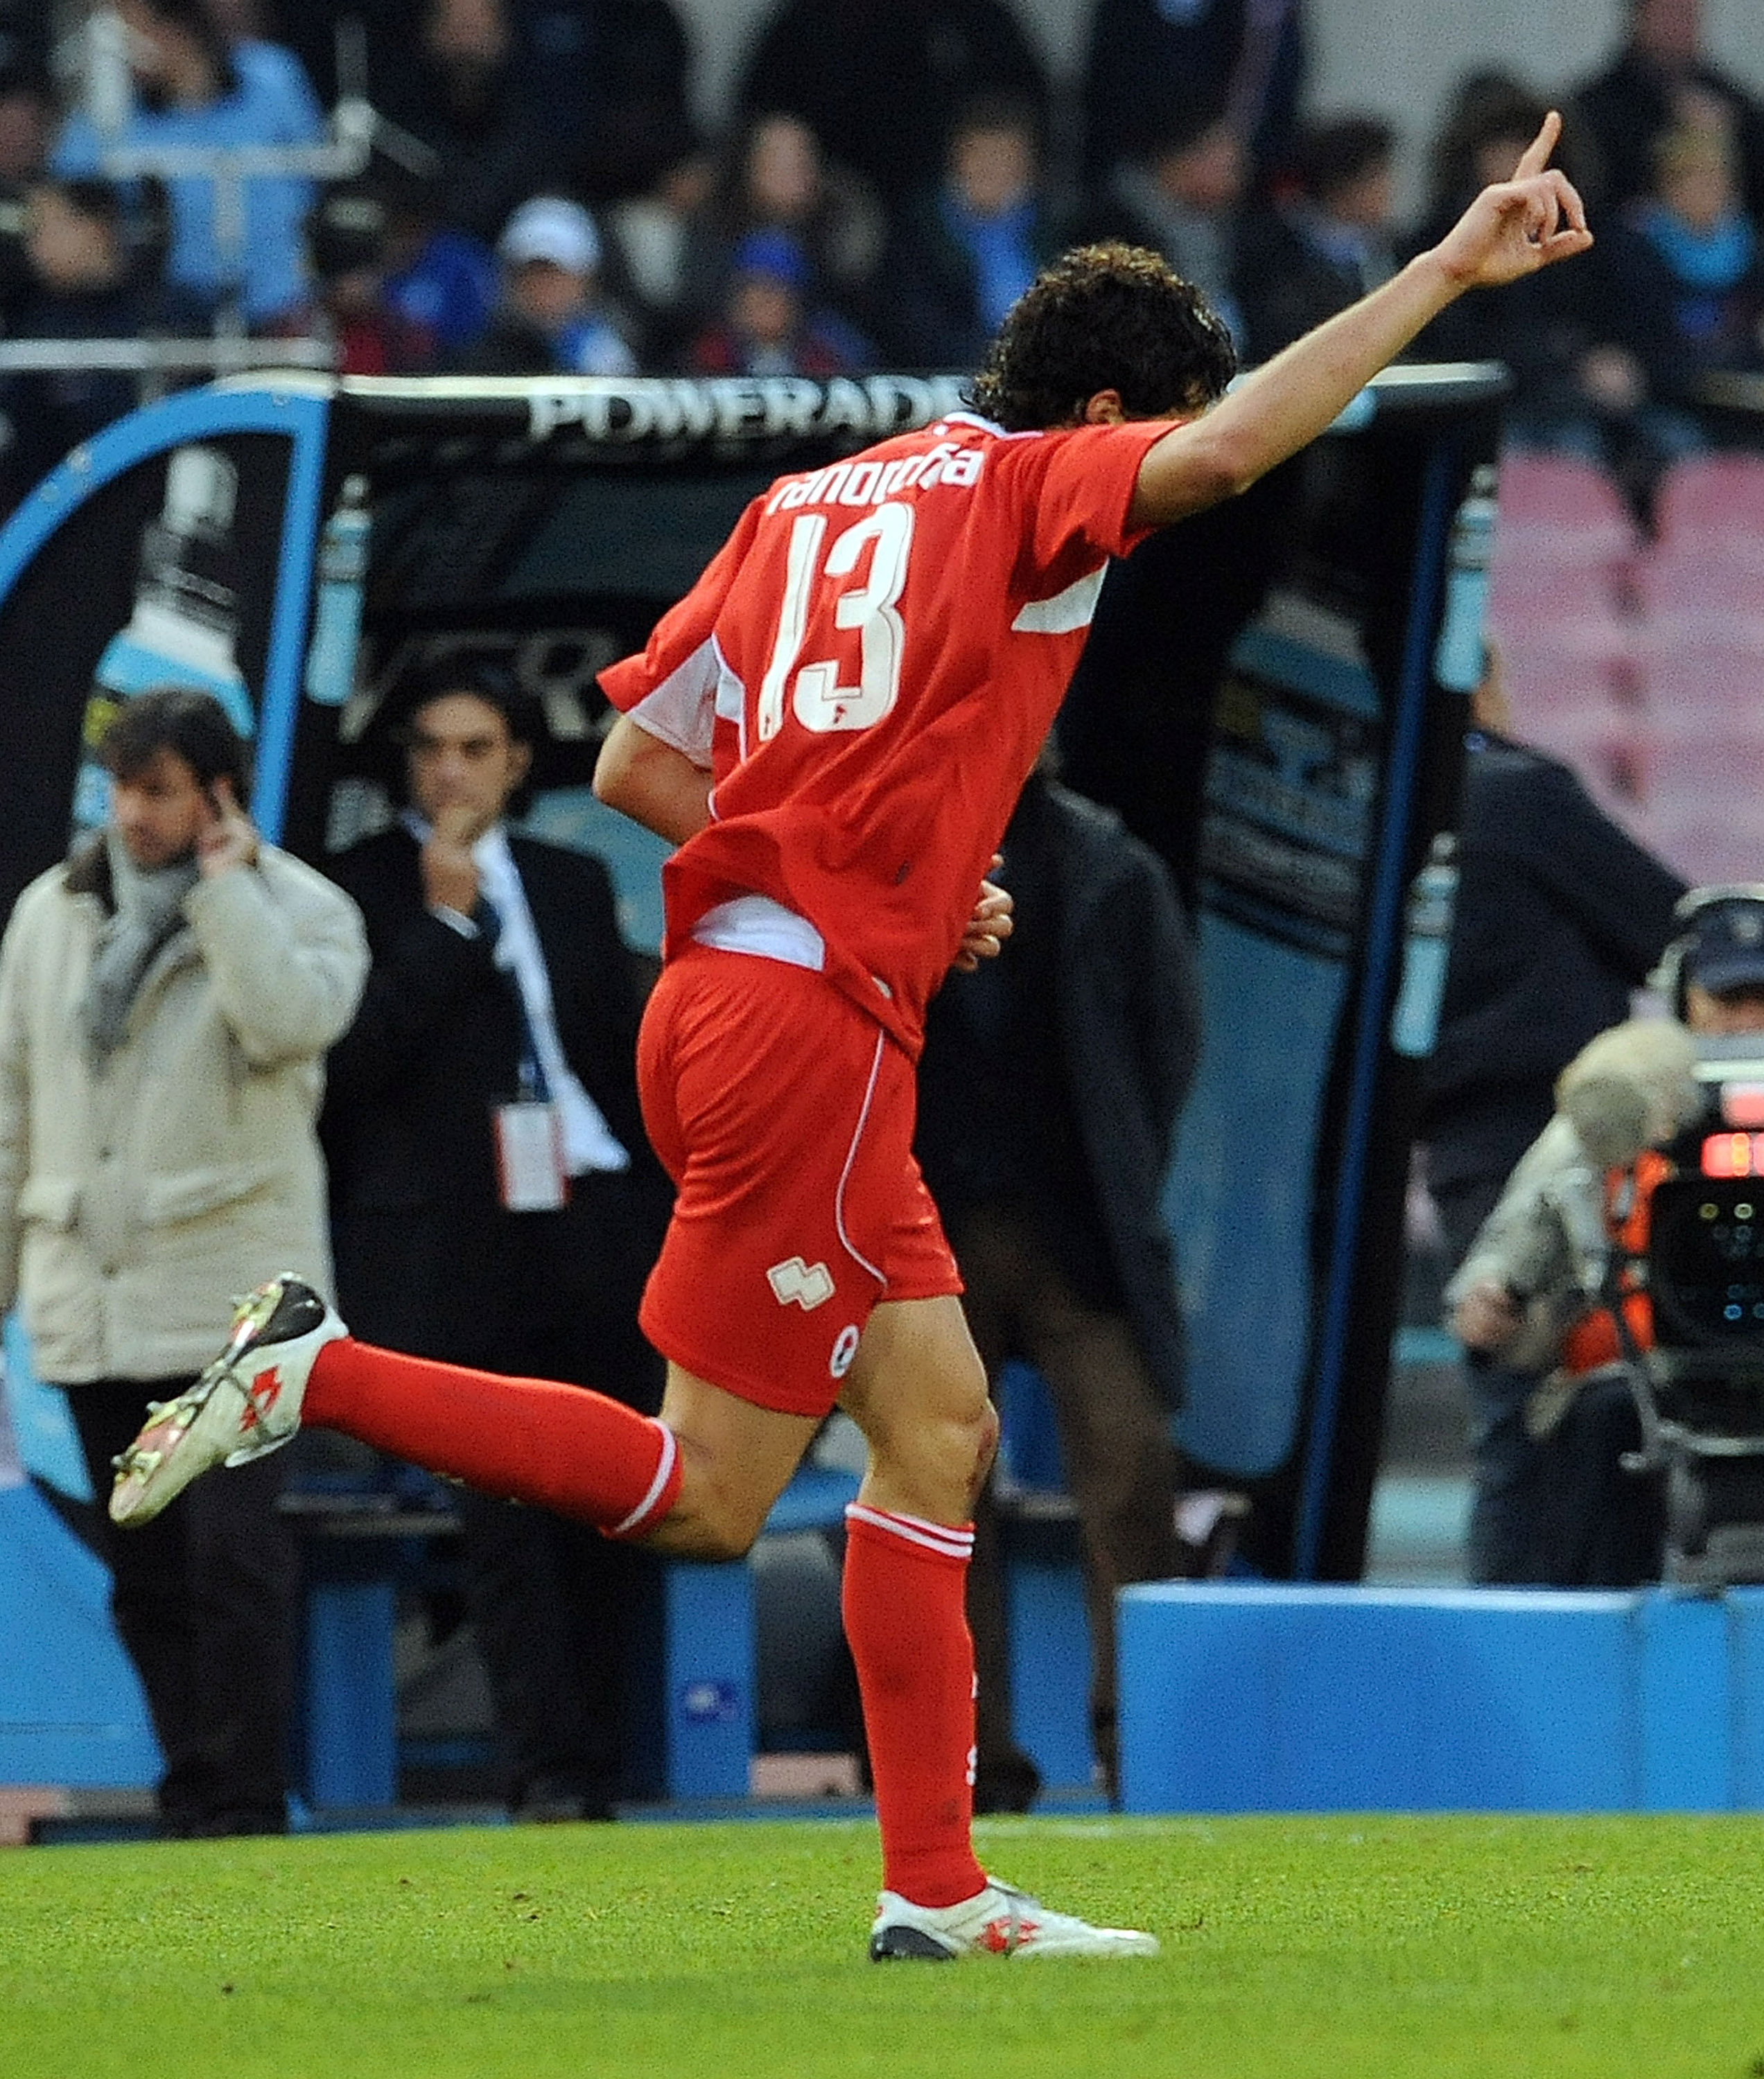 NAPLES, ITALY - DECEMBER 06:  Andrea Ranocchia of AS Bari celebrates after scoring their second goal during the Serie A match between SSC Napoli and AS Bari at Stadio San Paolo on December 6, 2009 in Naples, Italy.  (Photo by Giuseppe Bellini/Getty Images